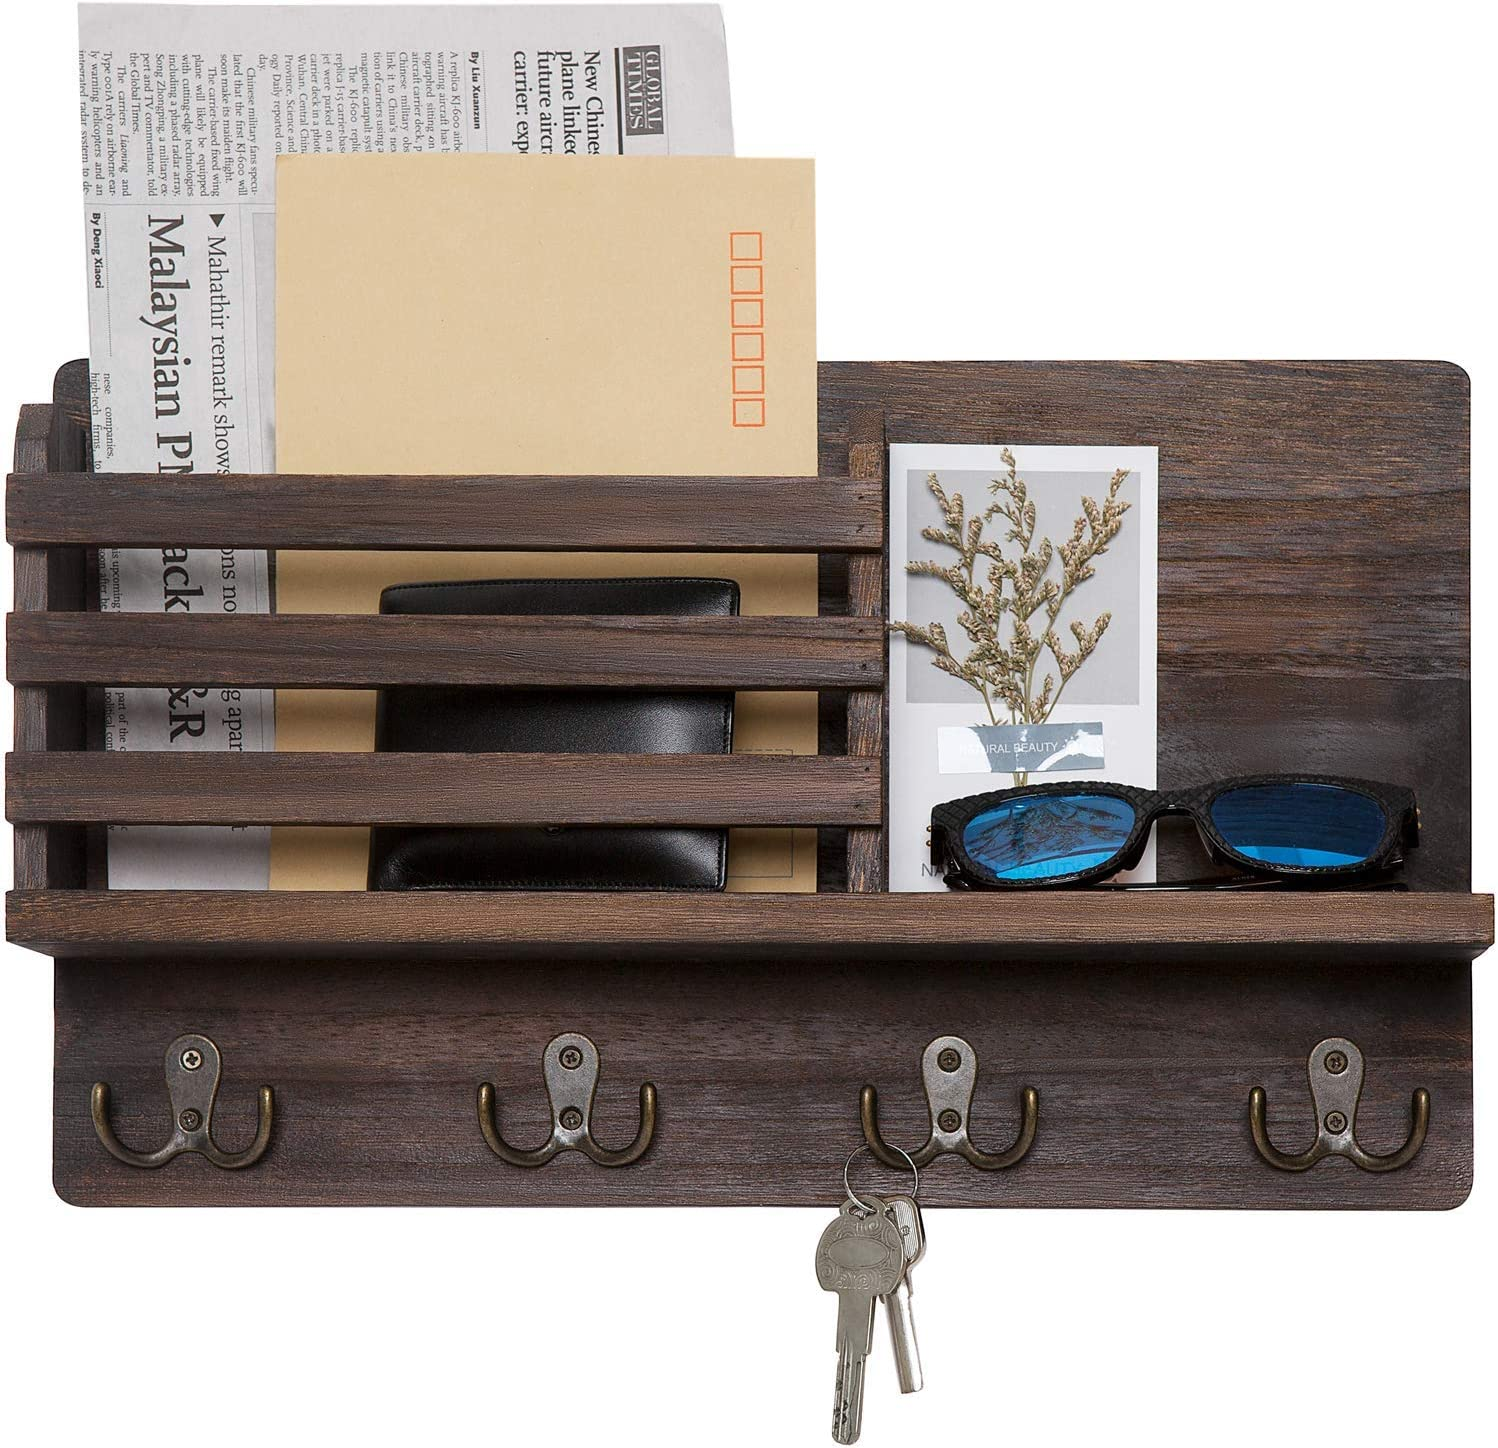 Amazon Com Dahey Wall Mounted Mail Holder Wooden Mail Sorter Organizer With 4 Double Key Hooks And A Floating Shelf Rustic Home Decor For Entryway Or Mudroom Brown Home Improvement